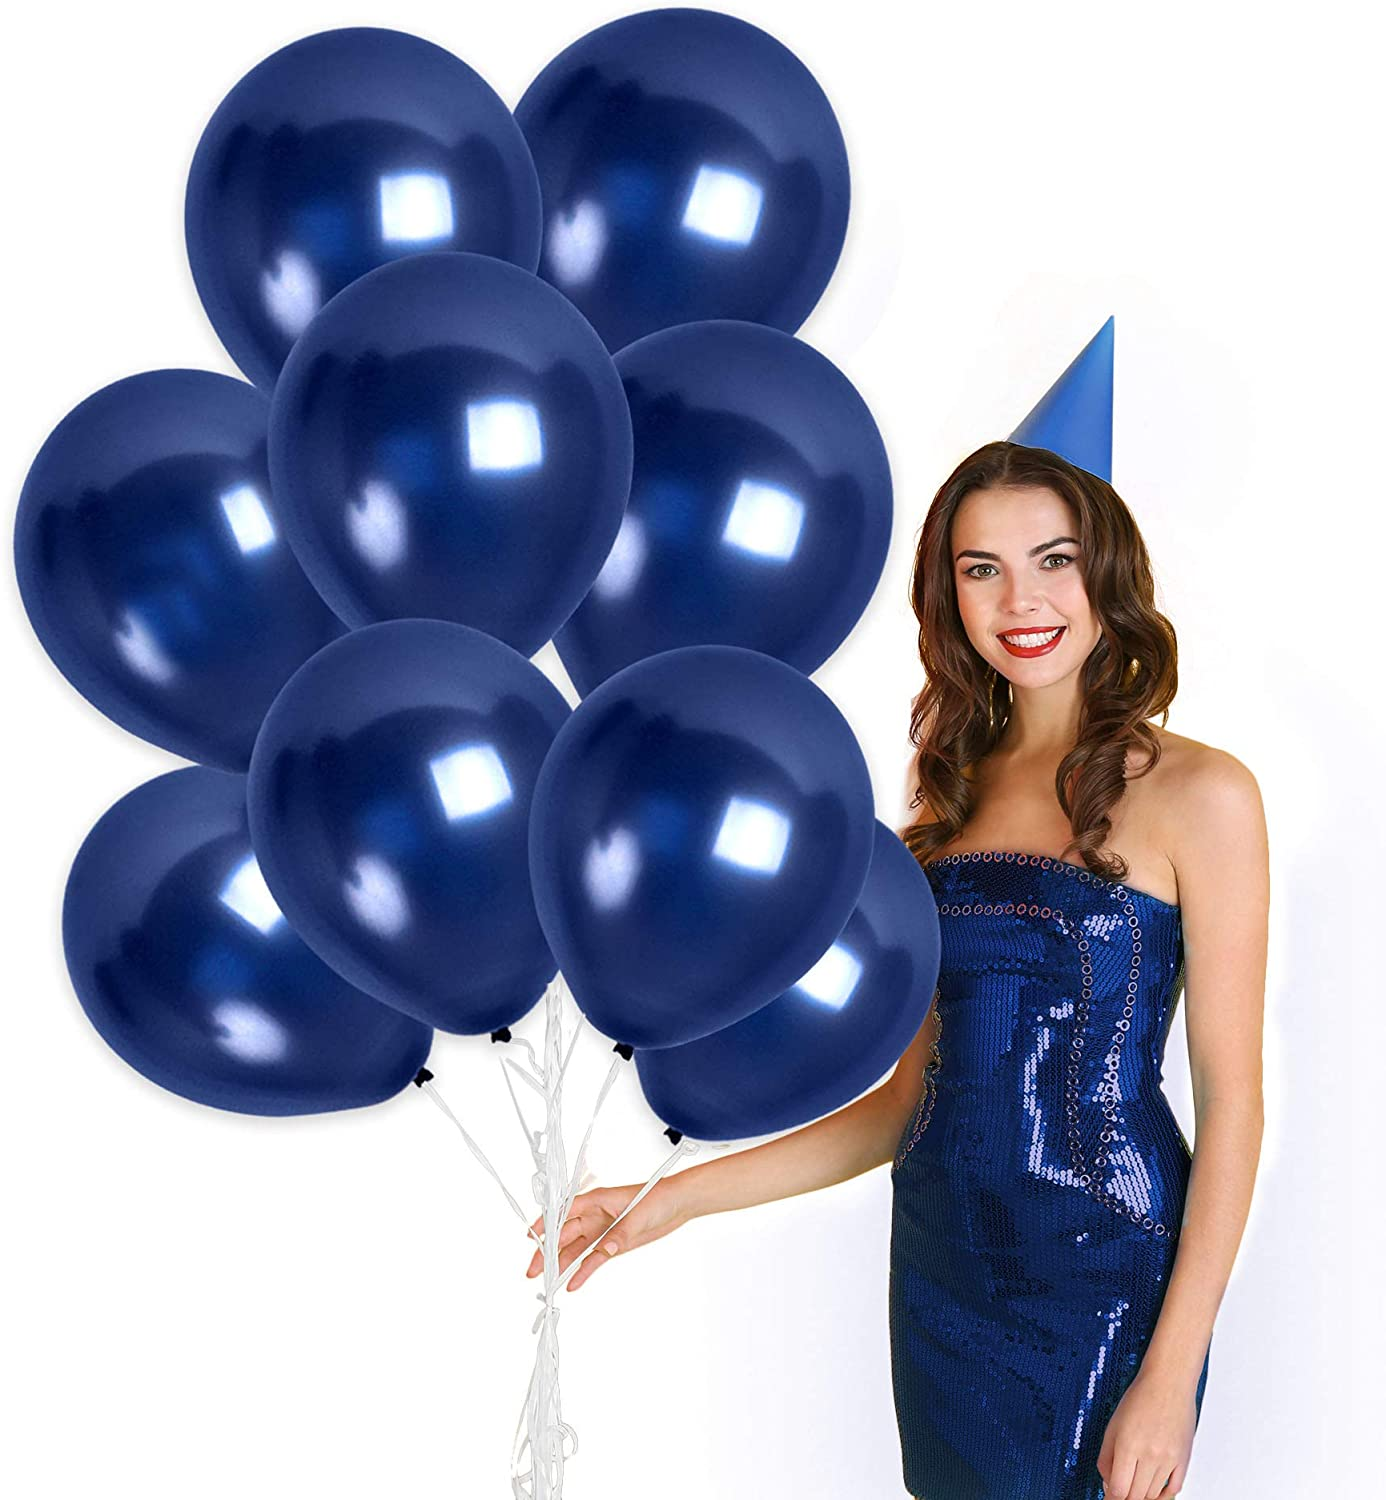 Metallic Navy Blue Balloon Garland 72 Pack 12 Inch Latex Midnight Balloons Hanukkah Decorations for Birthday Baby Shower Party Bachelorette Engagement Beach Wedding Carnival Party Graduation Decor